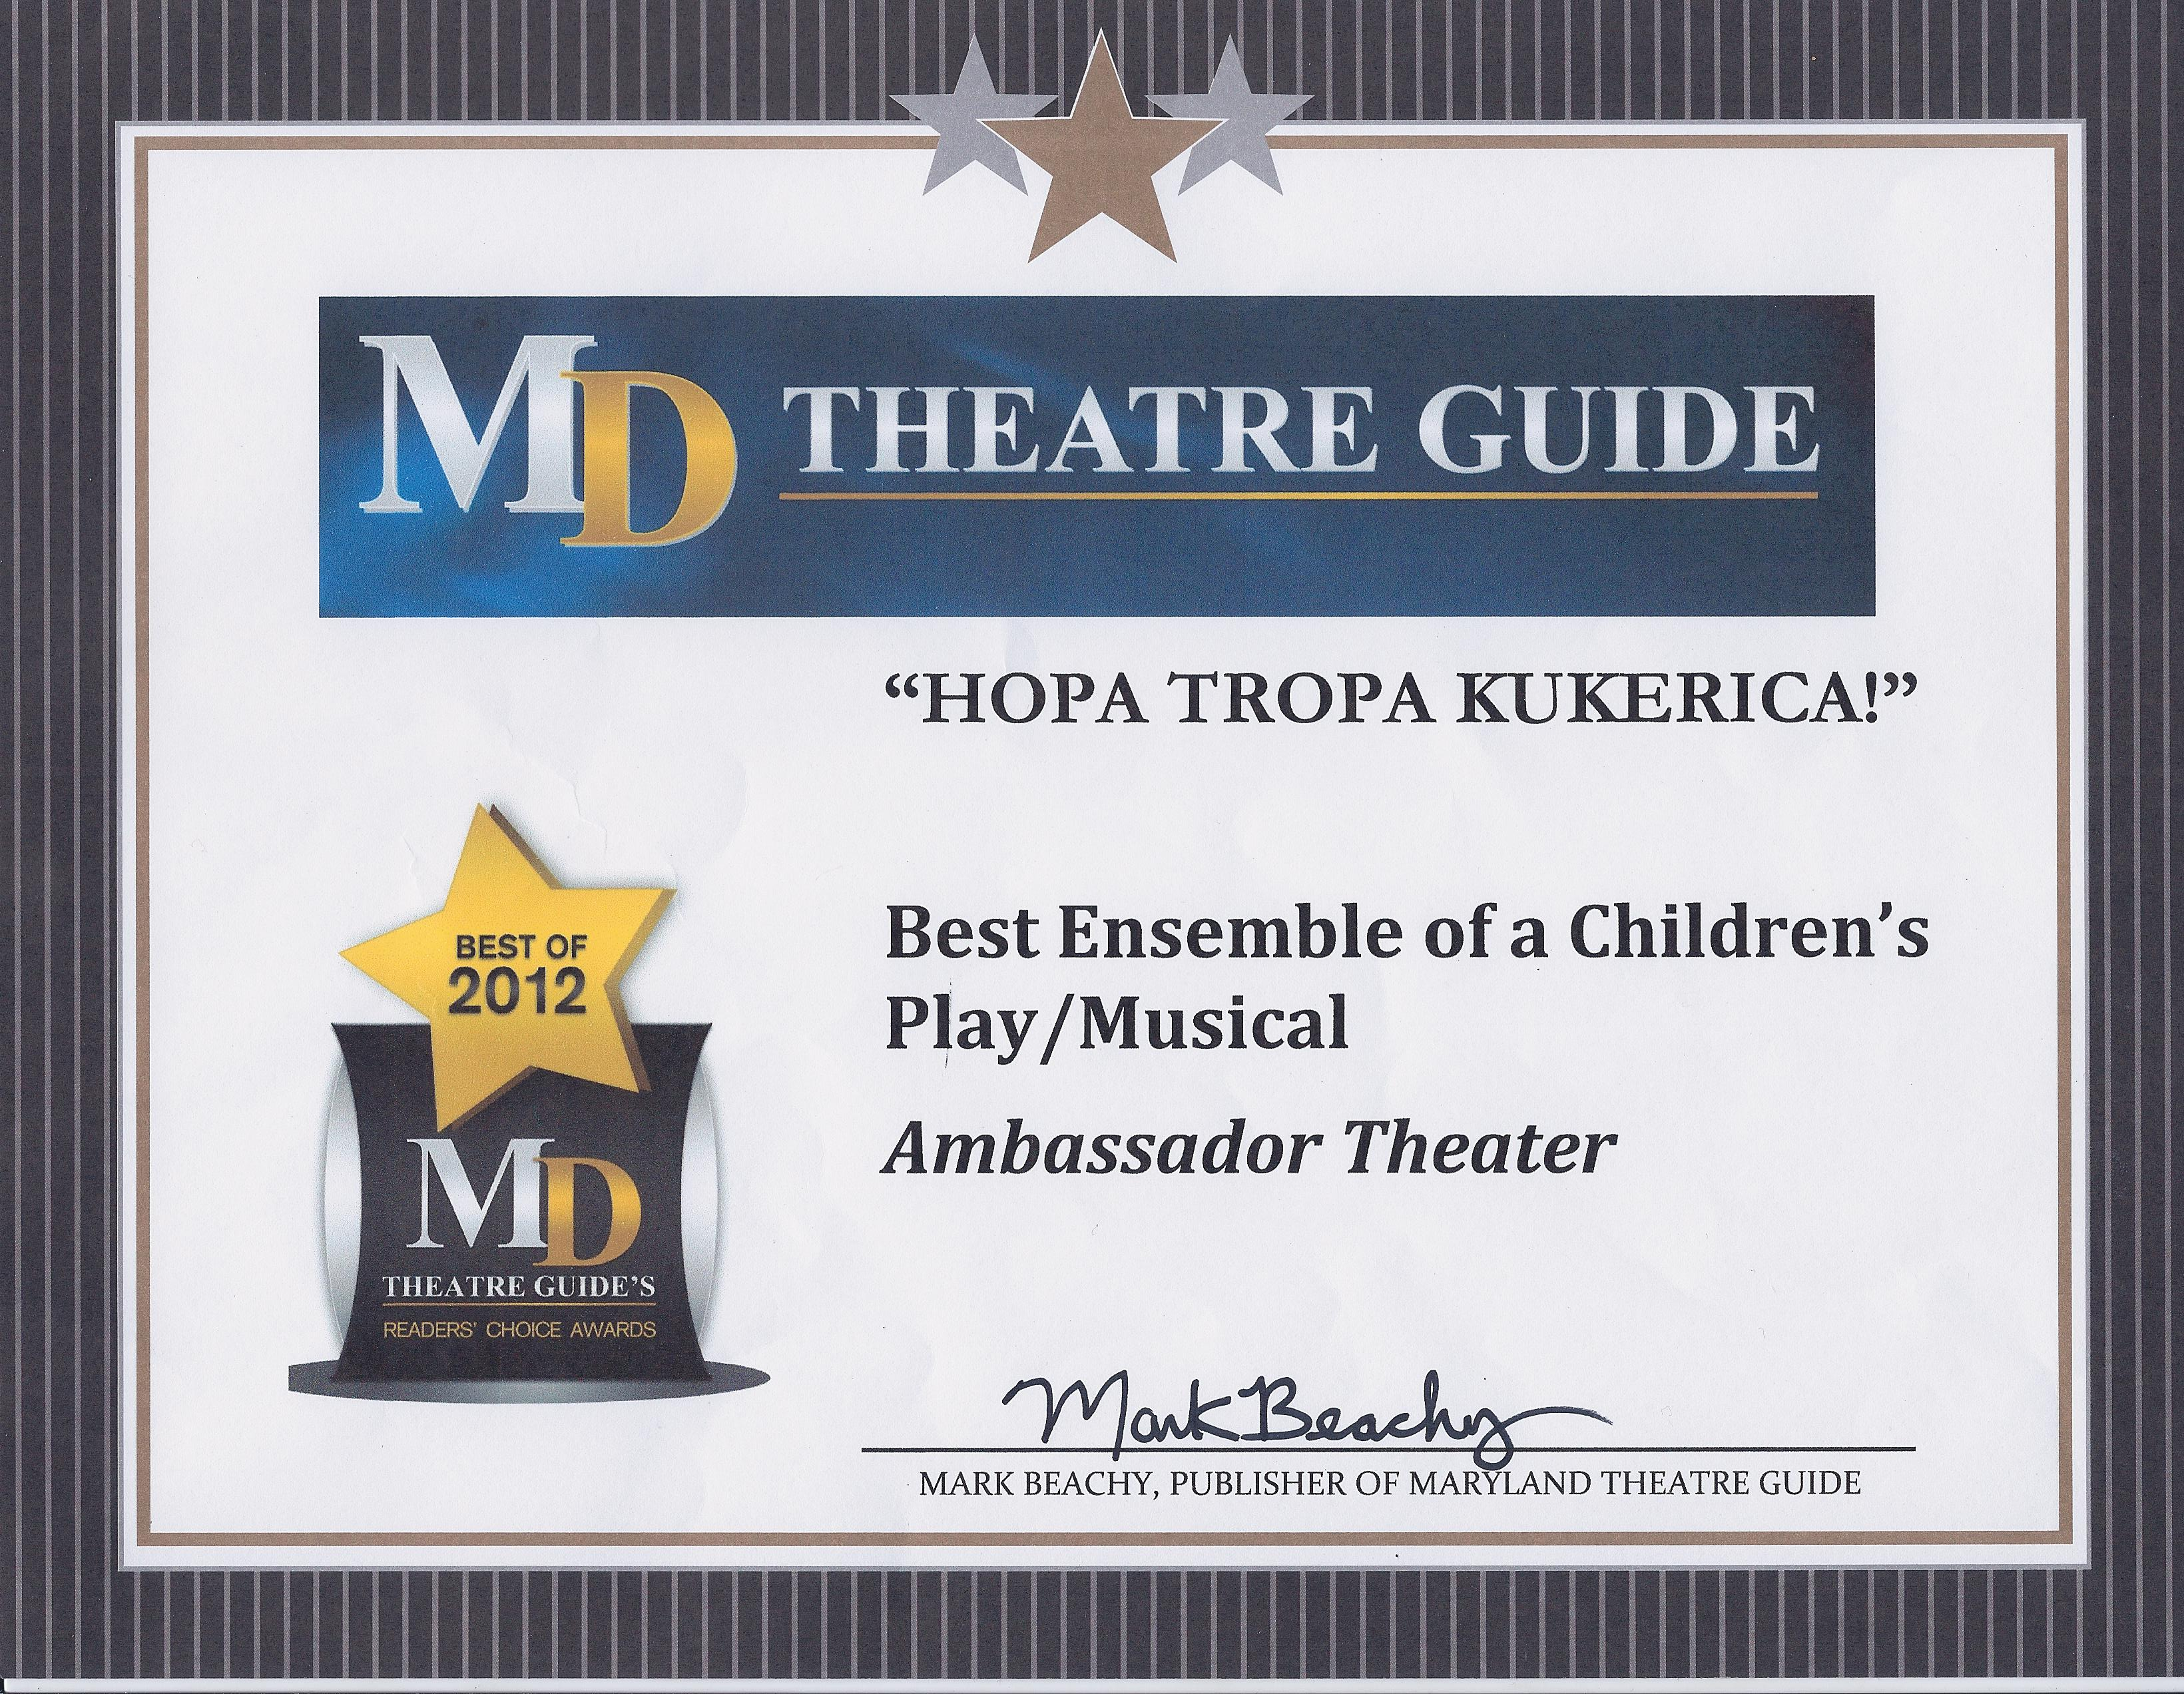 Hopa Tropa Kukerica Awarded Best Ensemble for 2012